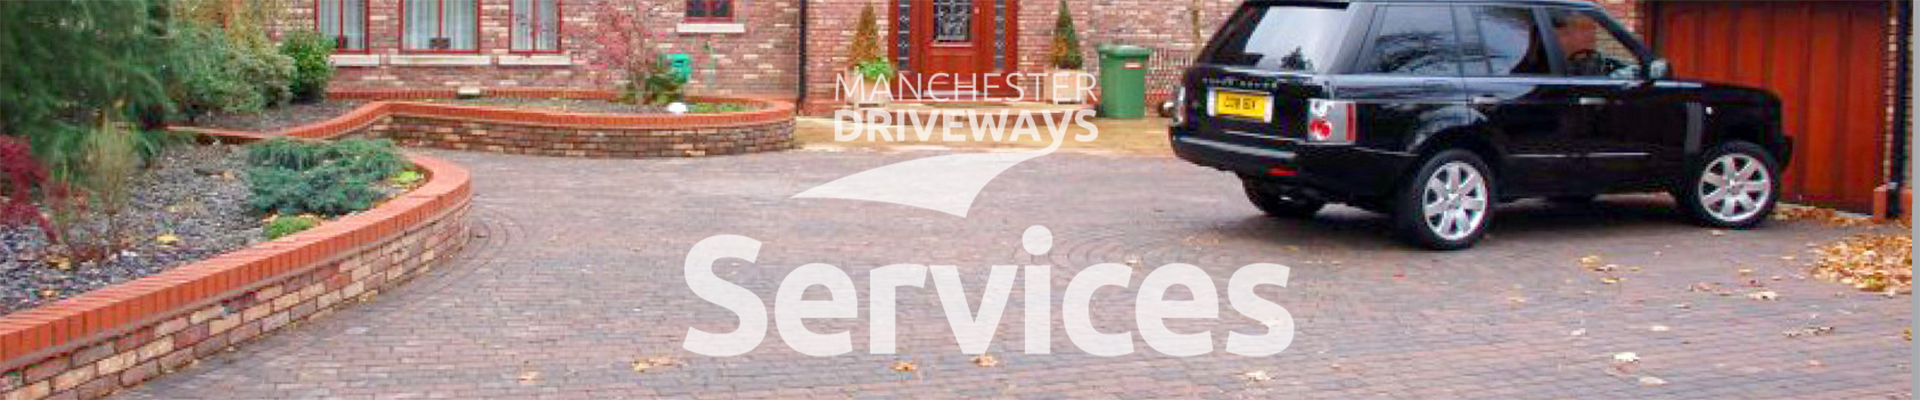 Manchester Driveways Services Rochdale Road